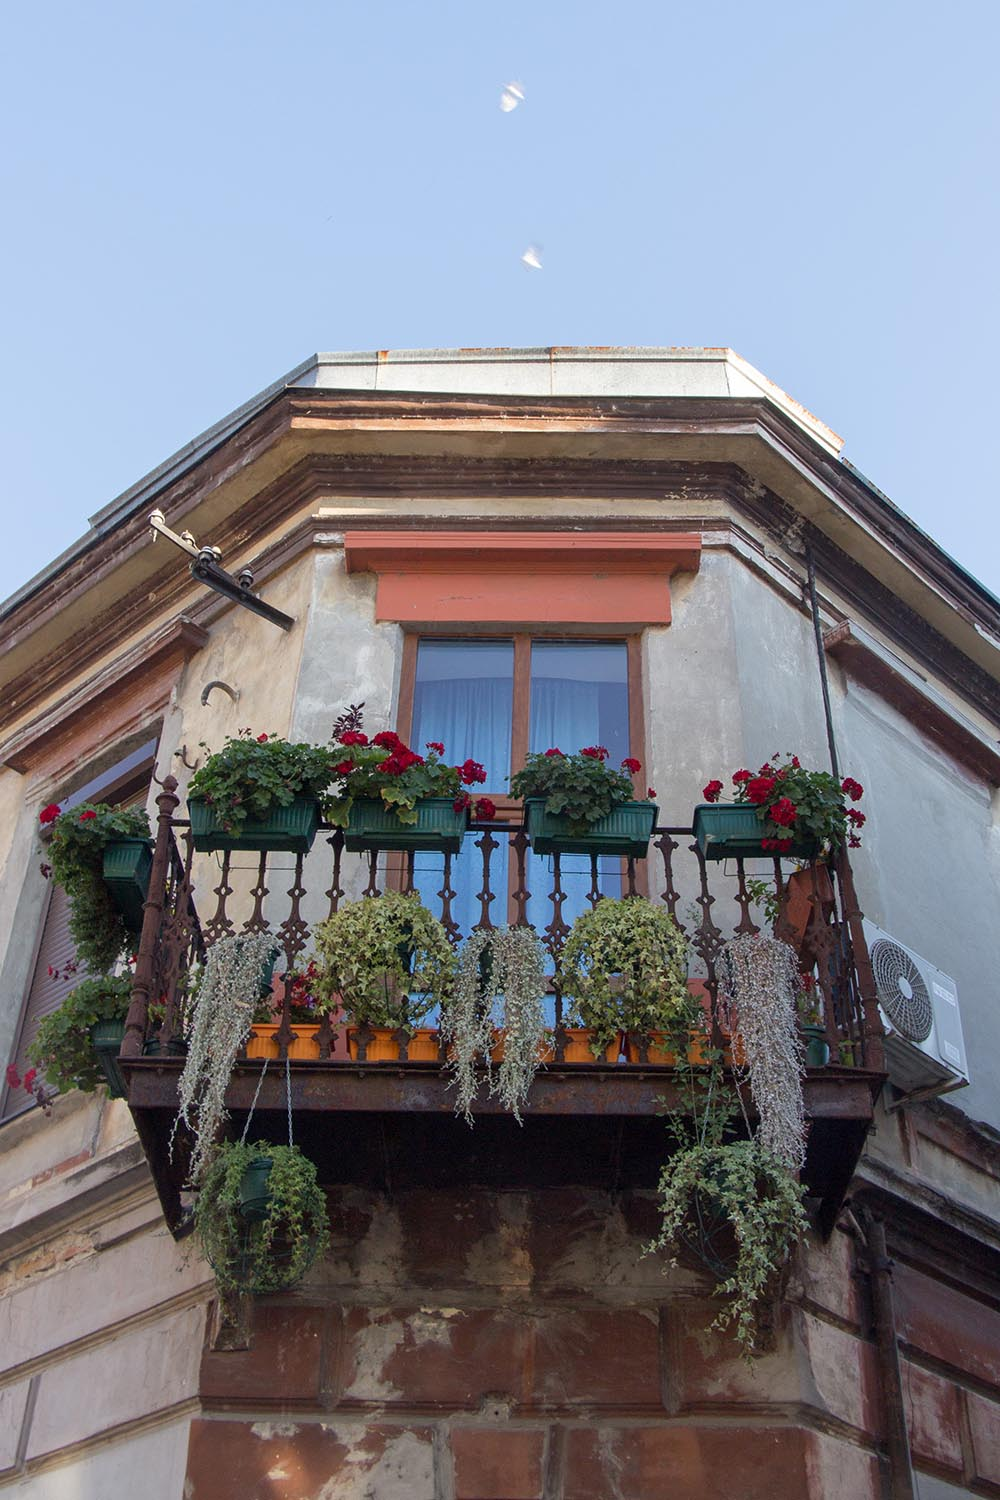 Balcony overflowing with flowers in Novi Sad, Serbia